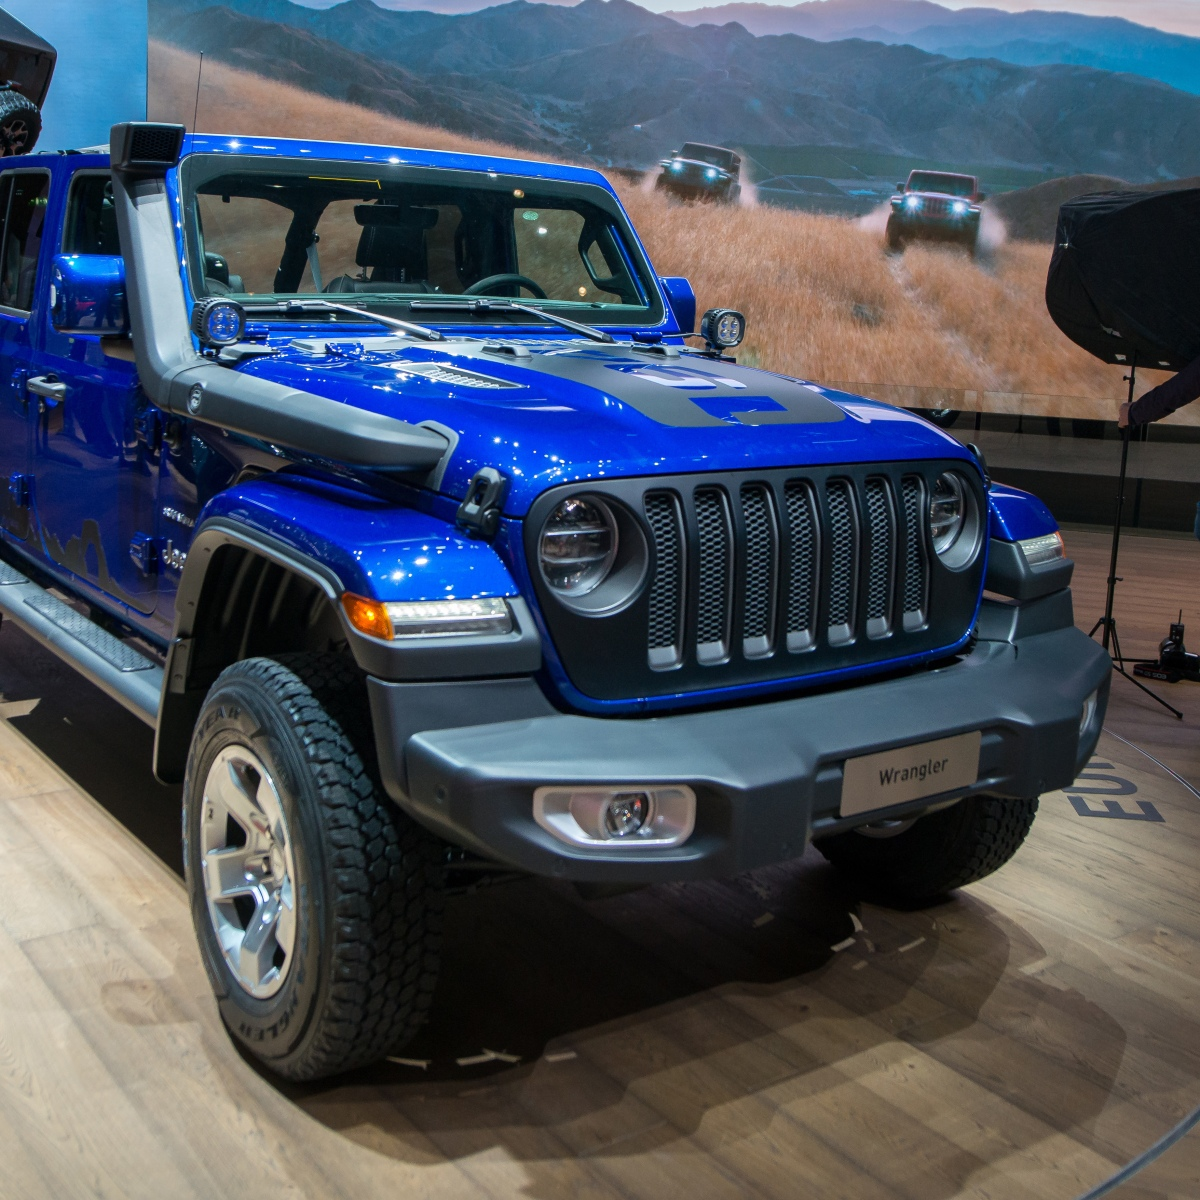 Fiat Chrysler Recall and Cruise Control Fault: What You